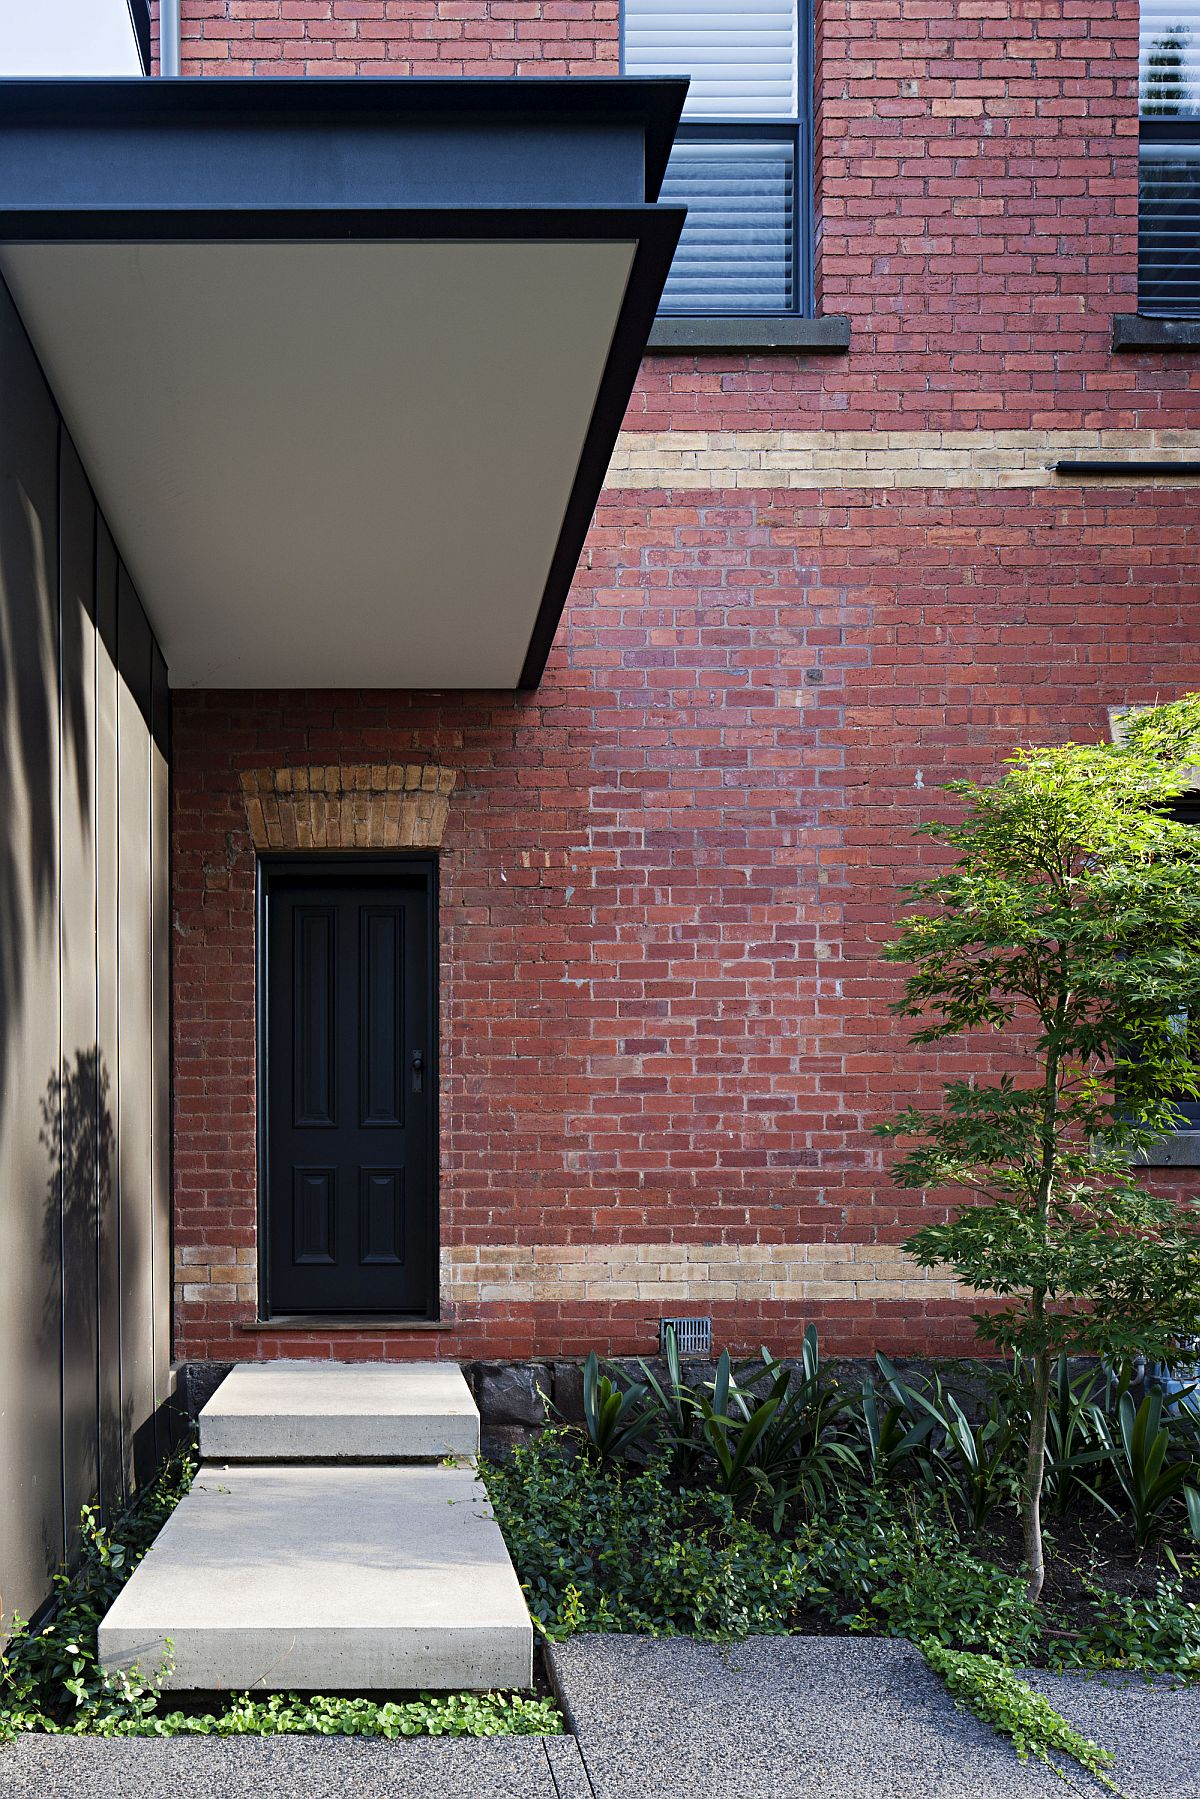 Sheltered-street-facade-of-the-Melbourne-home-with-brick-walls-59852